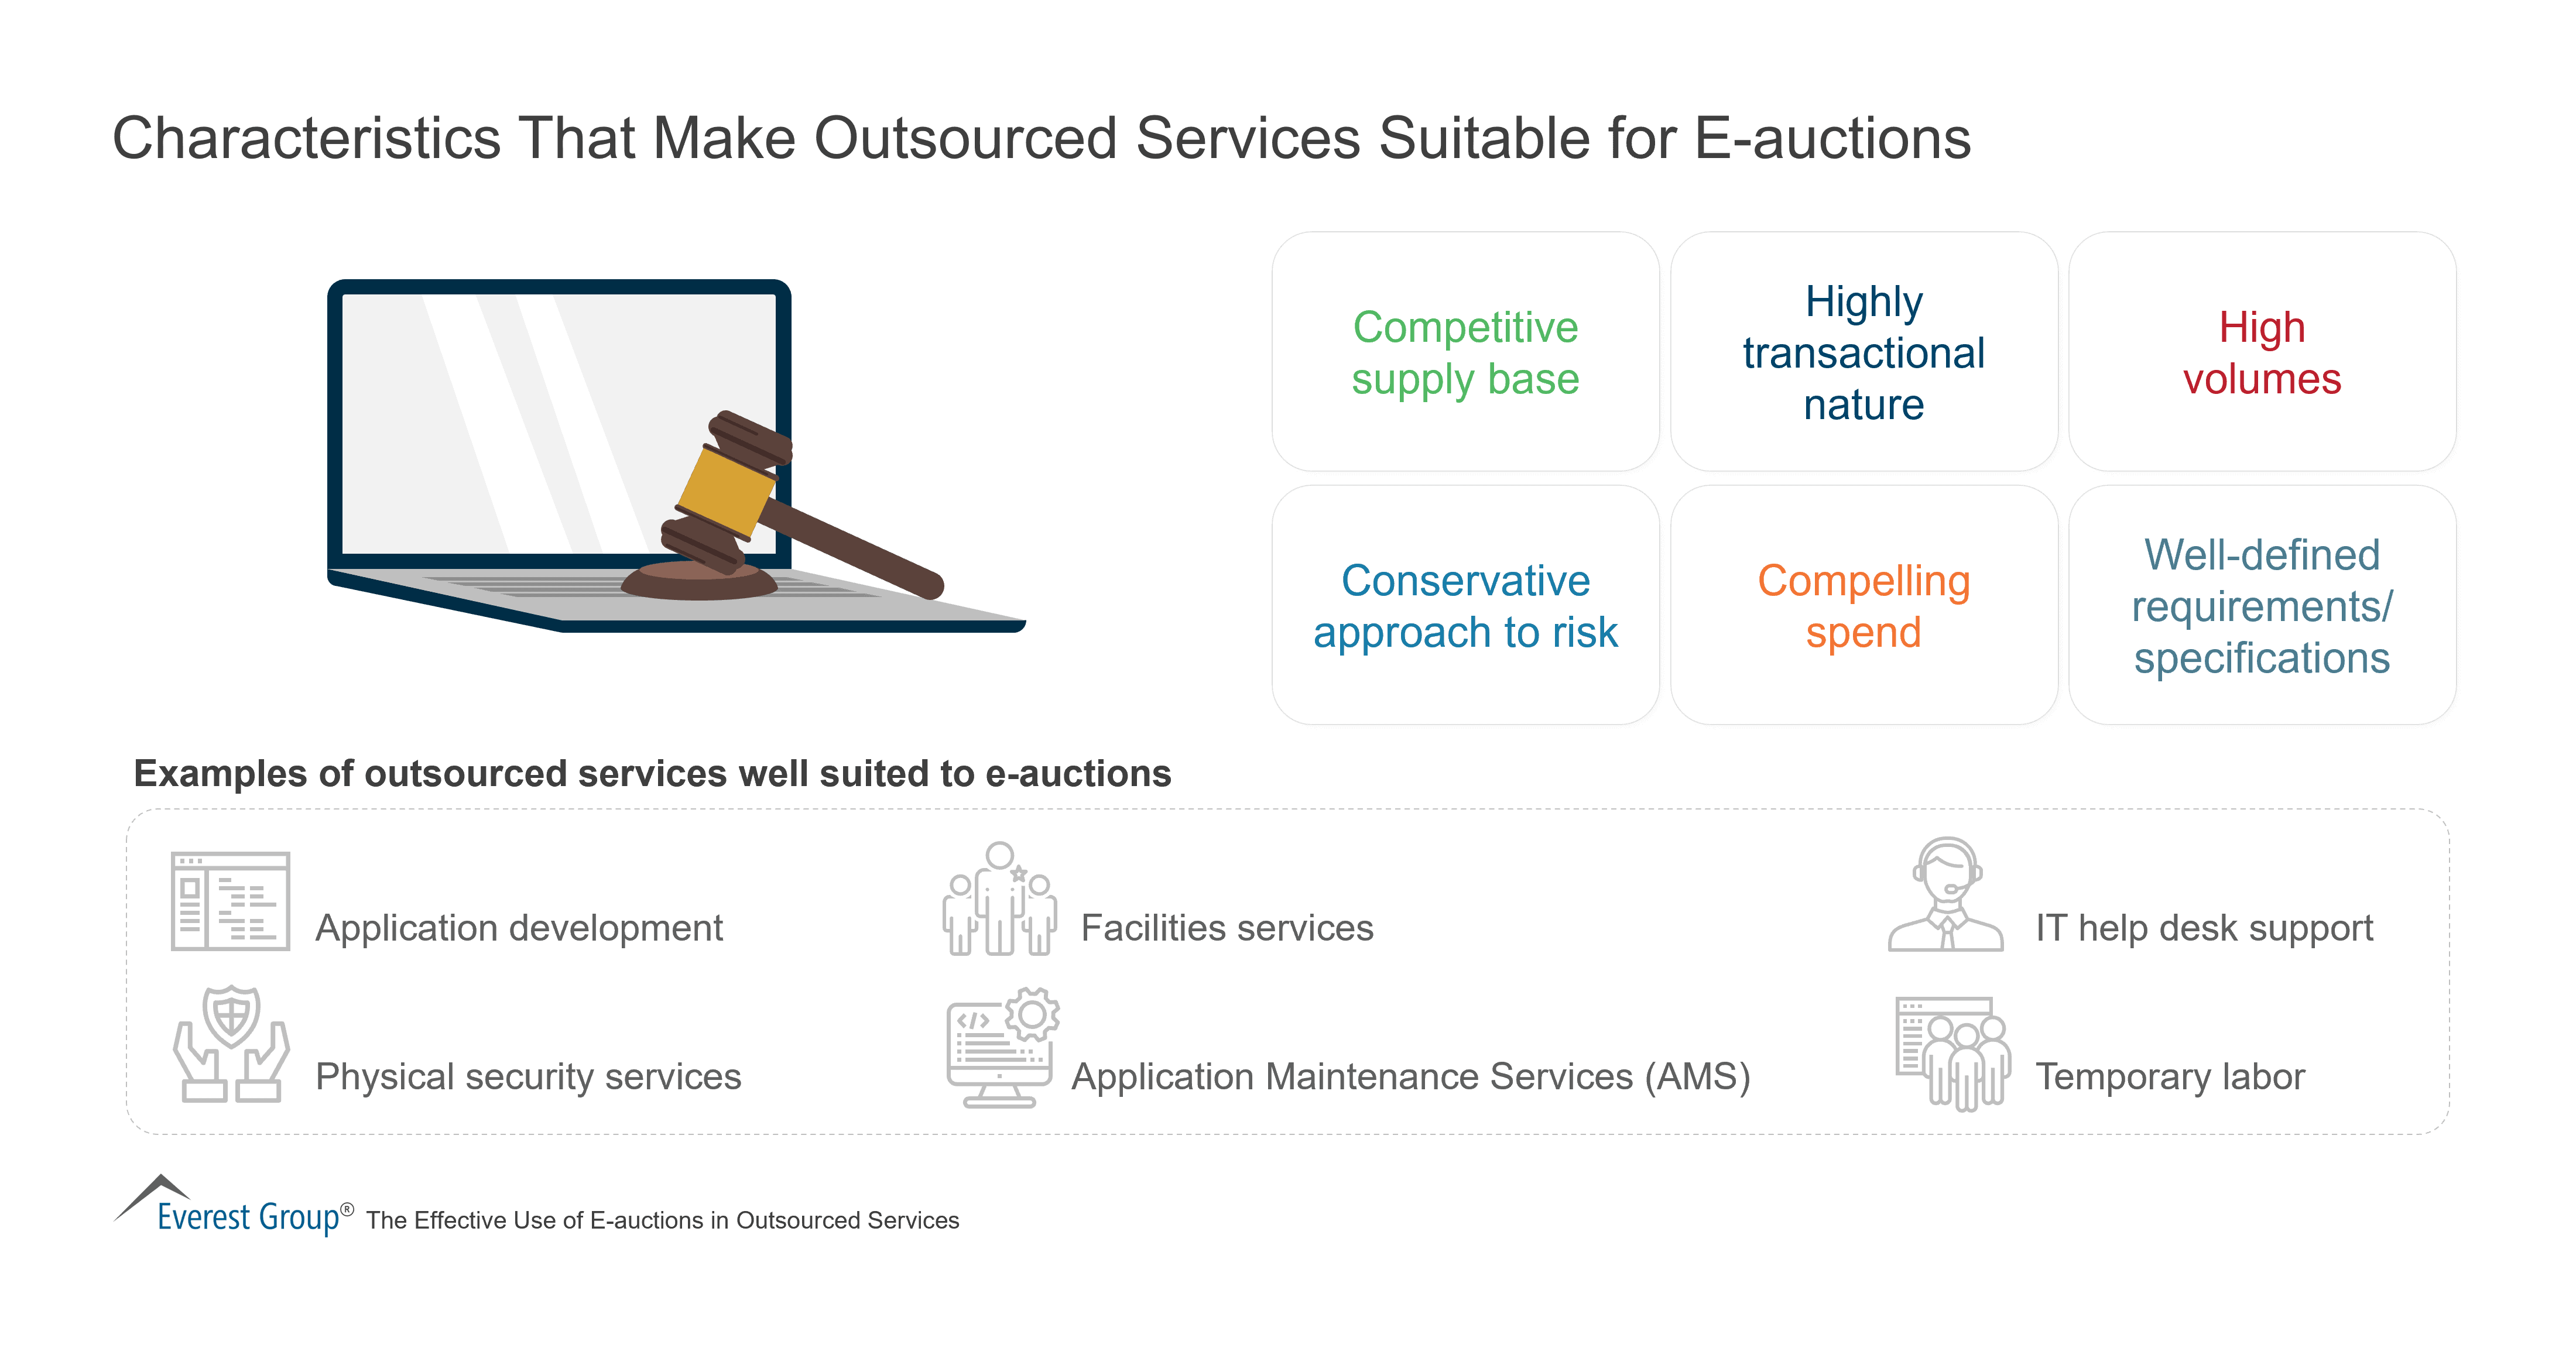 Characteristics That Make Outsourced Services Suitable for E-auctions